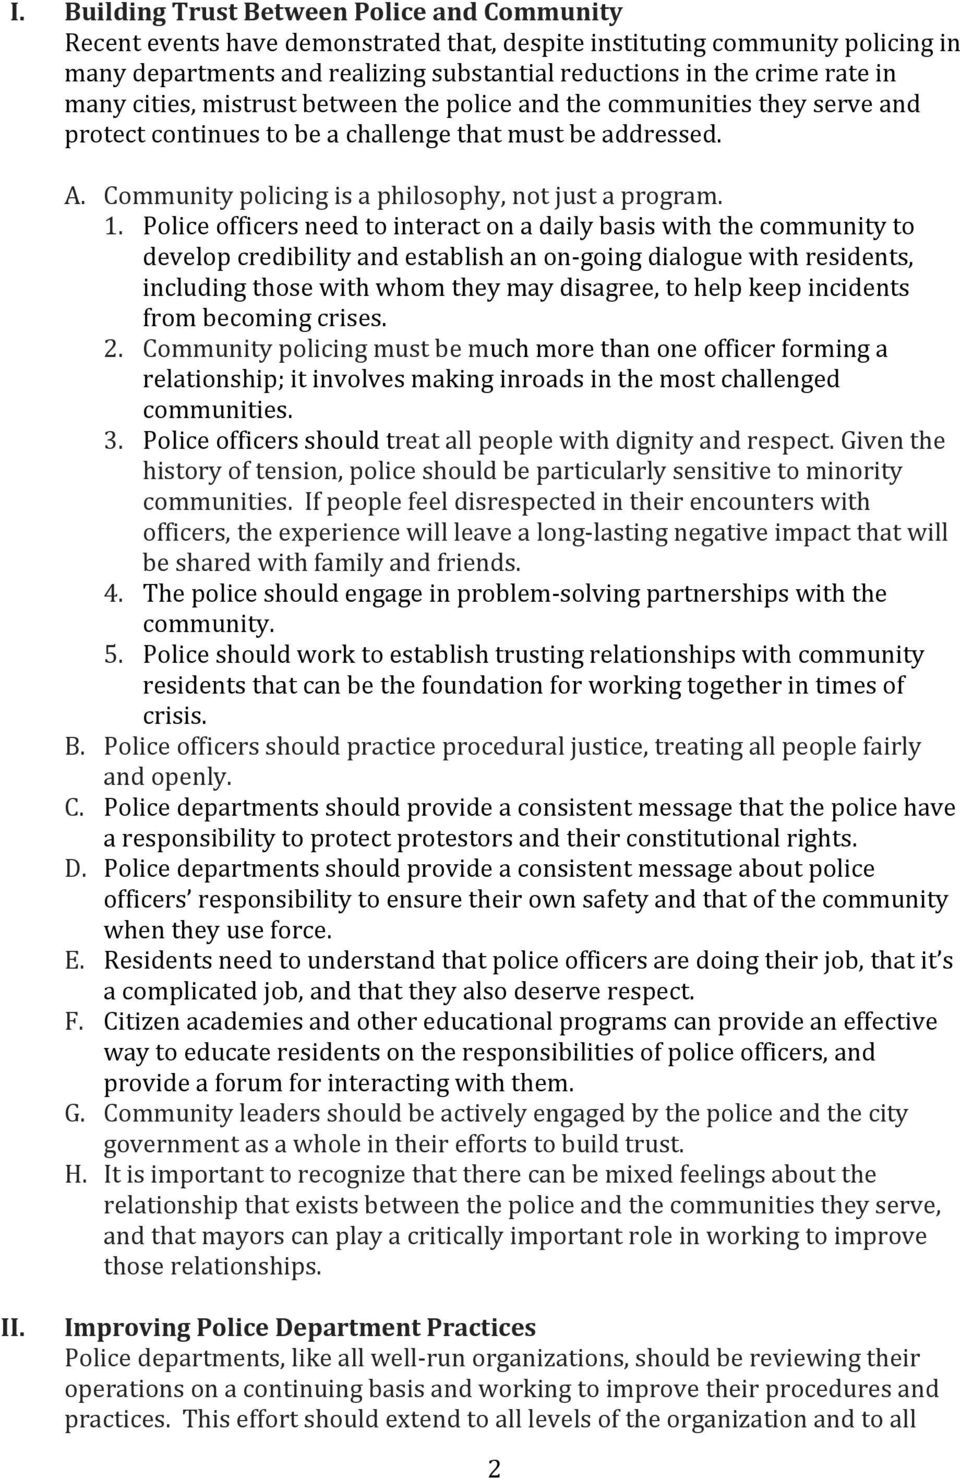 Police officers need to interact on a daily basis with the community to develop credibility and establish an on- going dialogue with residents, including those with whom they may disagree, to help